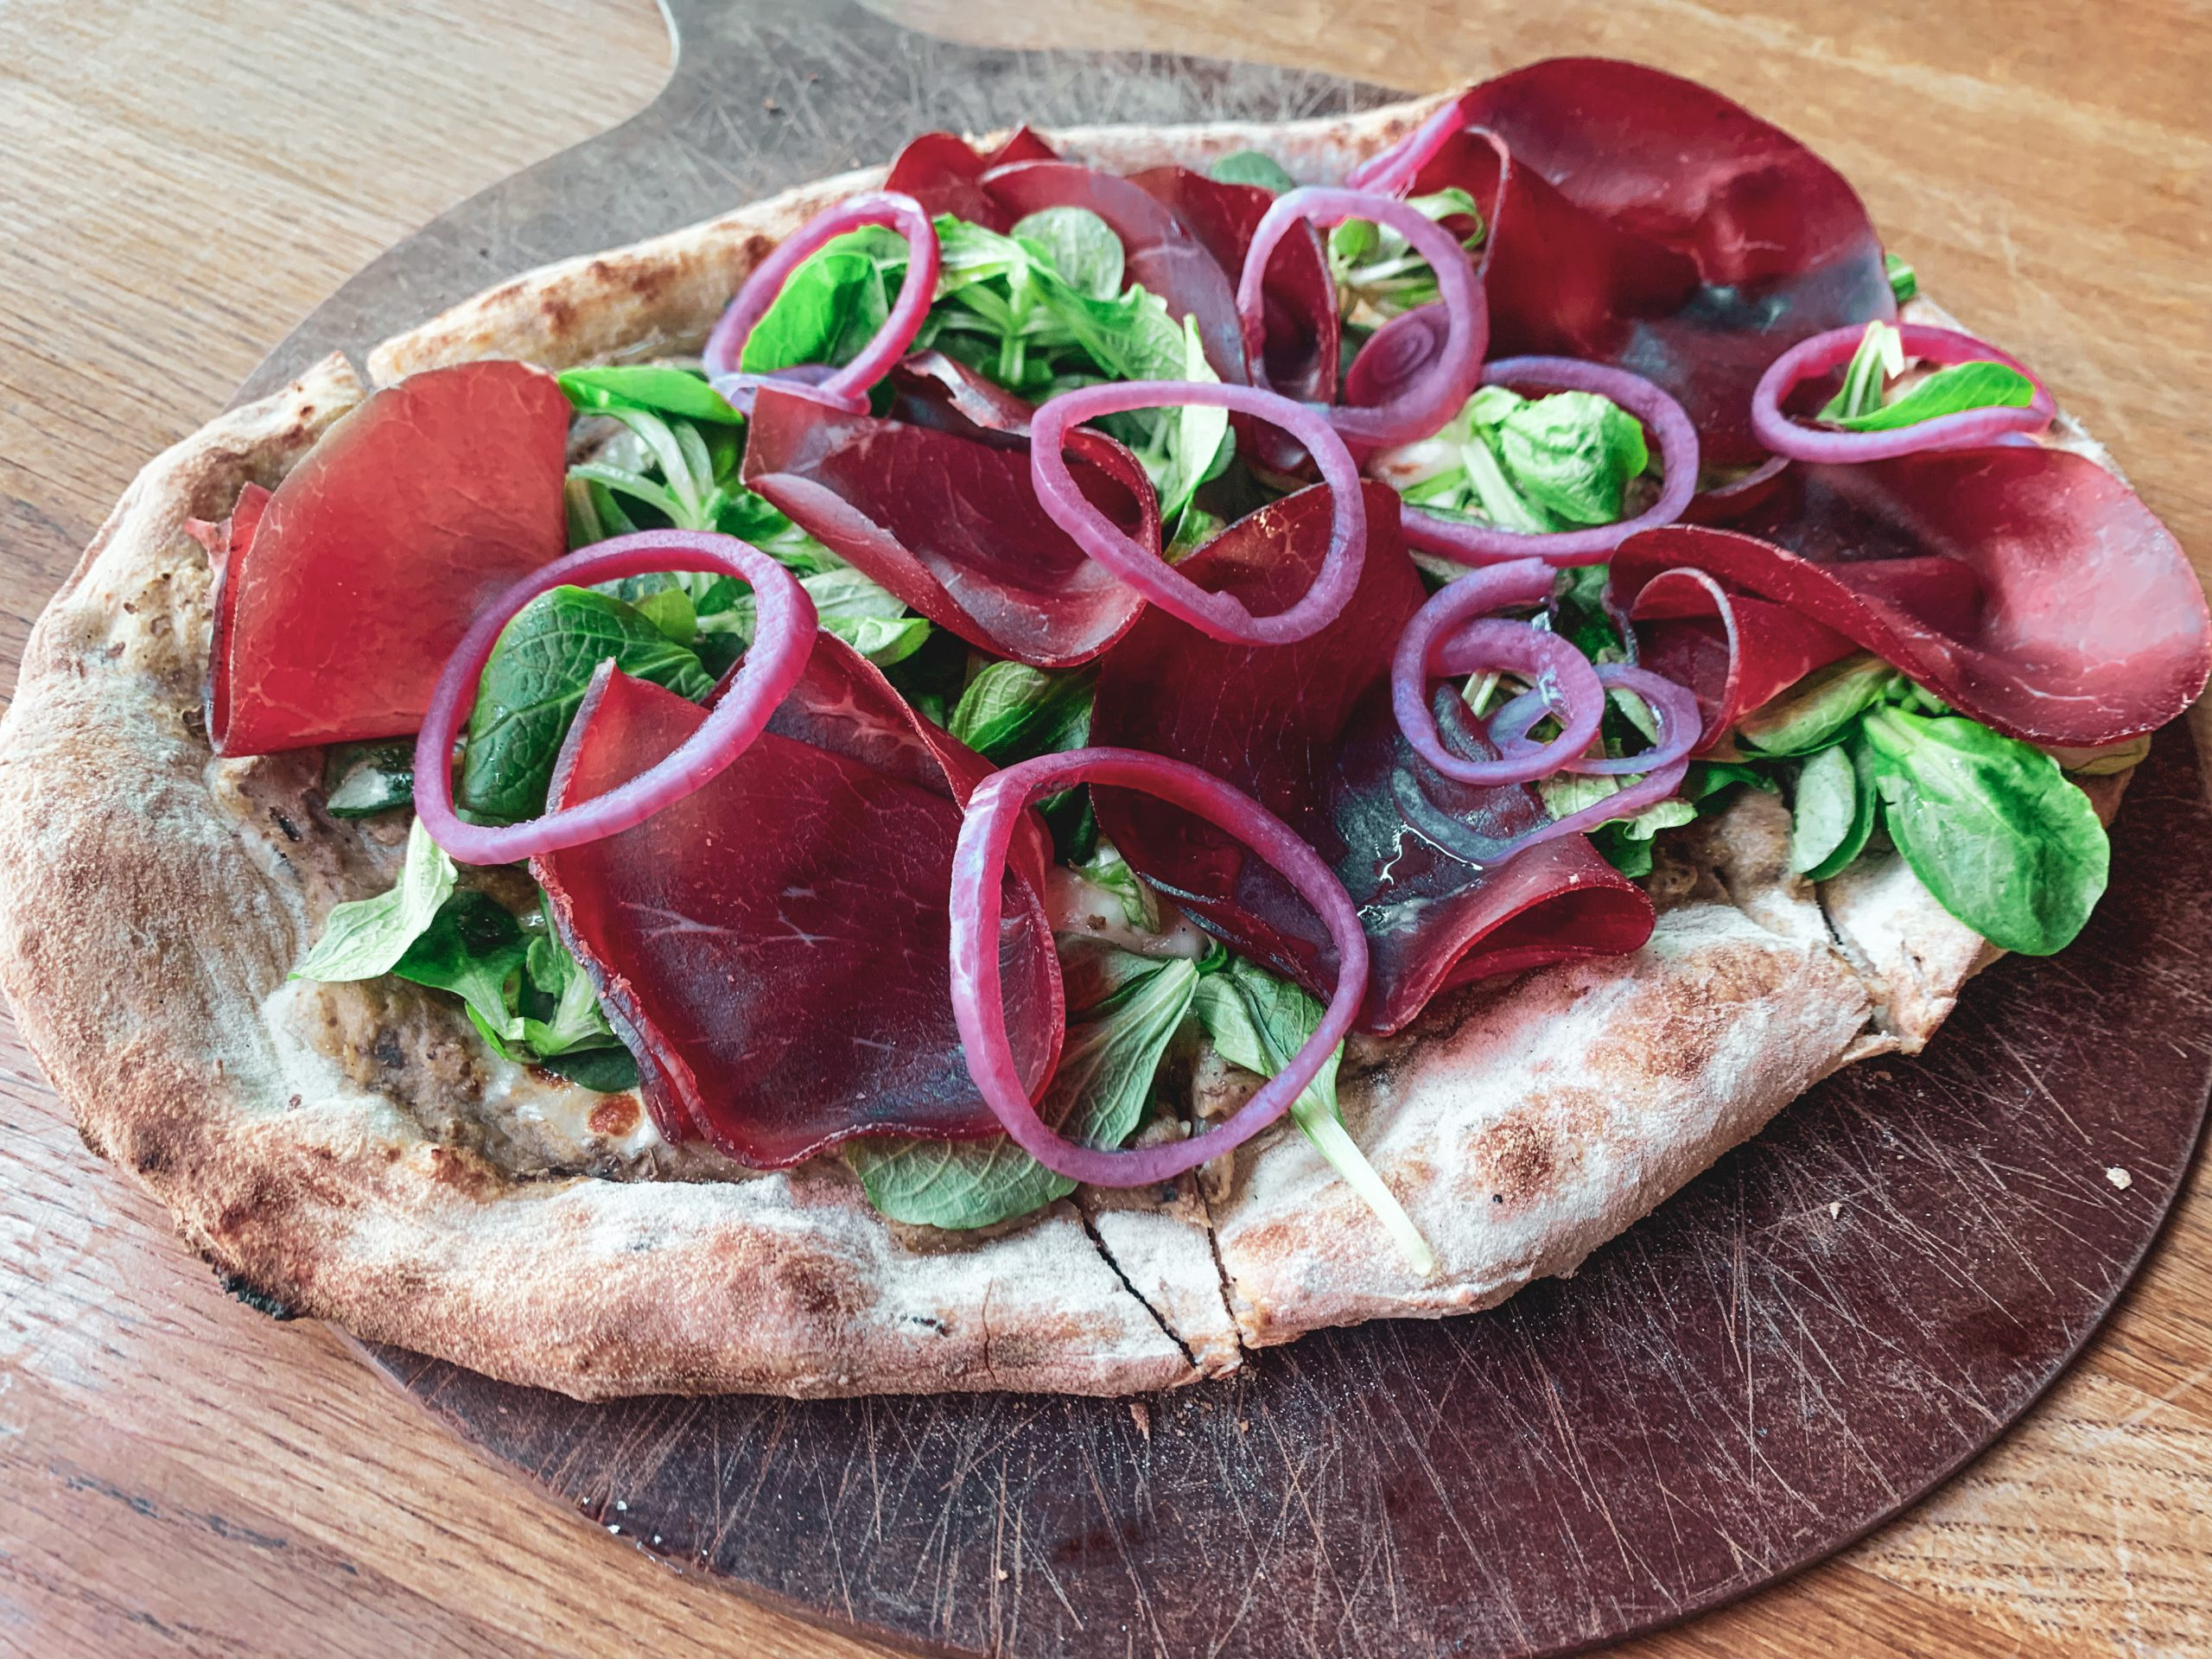 Pizza with Eggplant, Bresaola and Lambs Lettuce